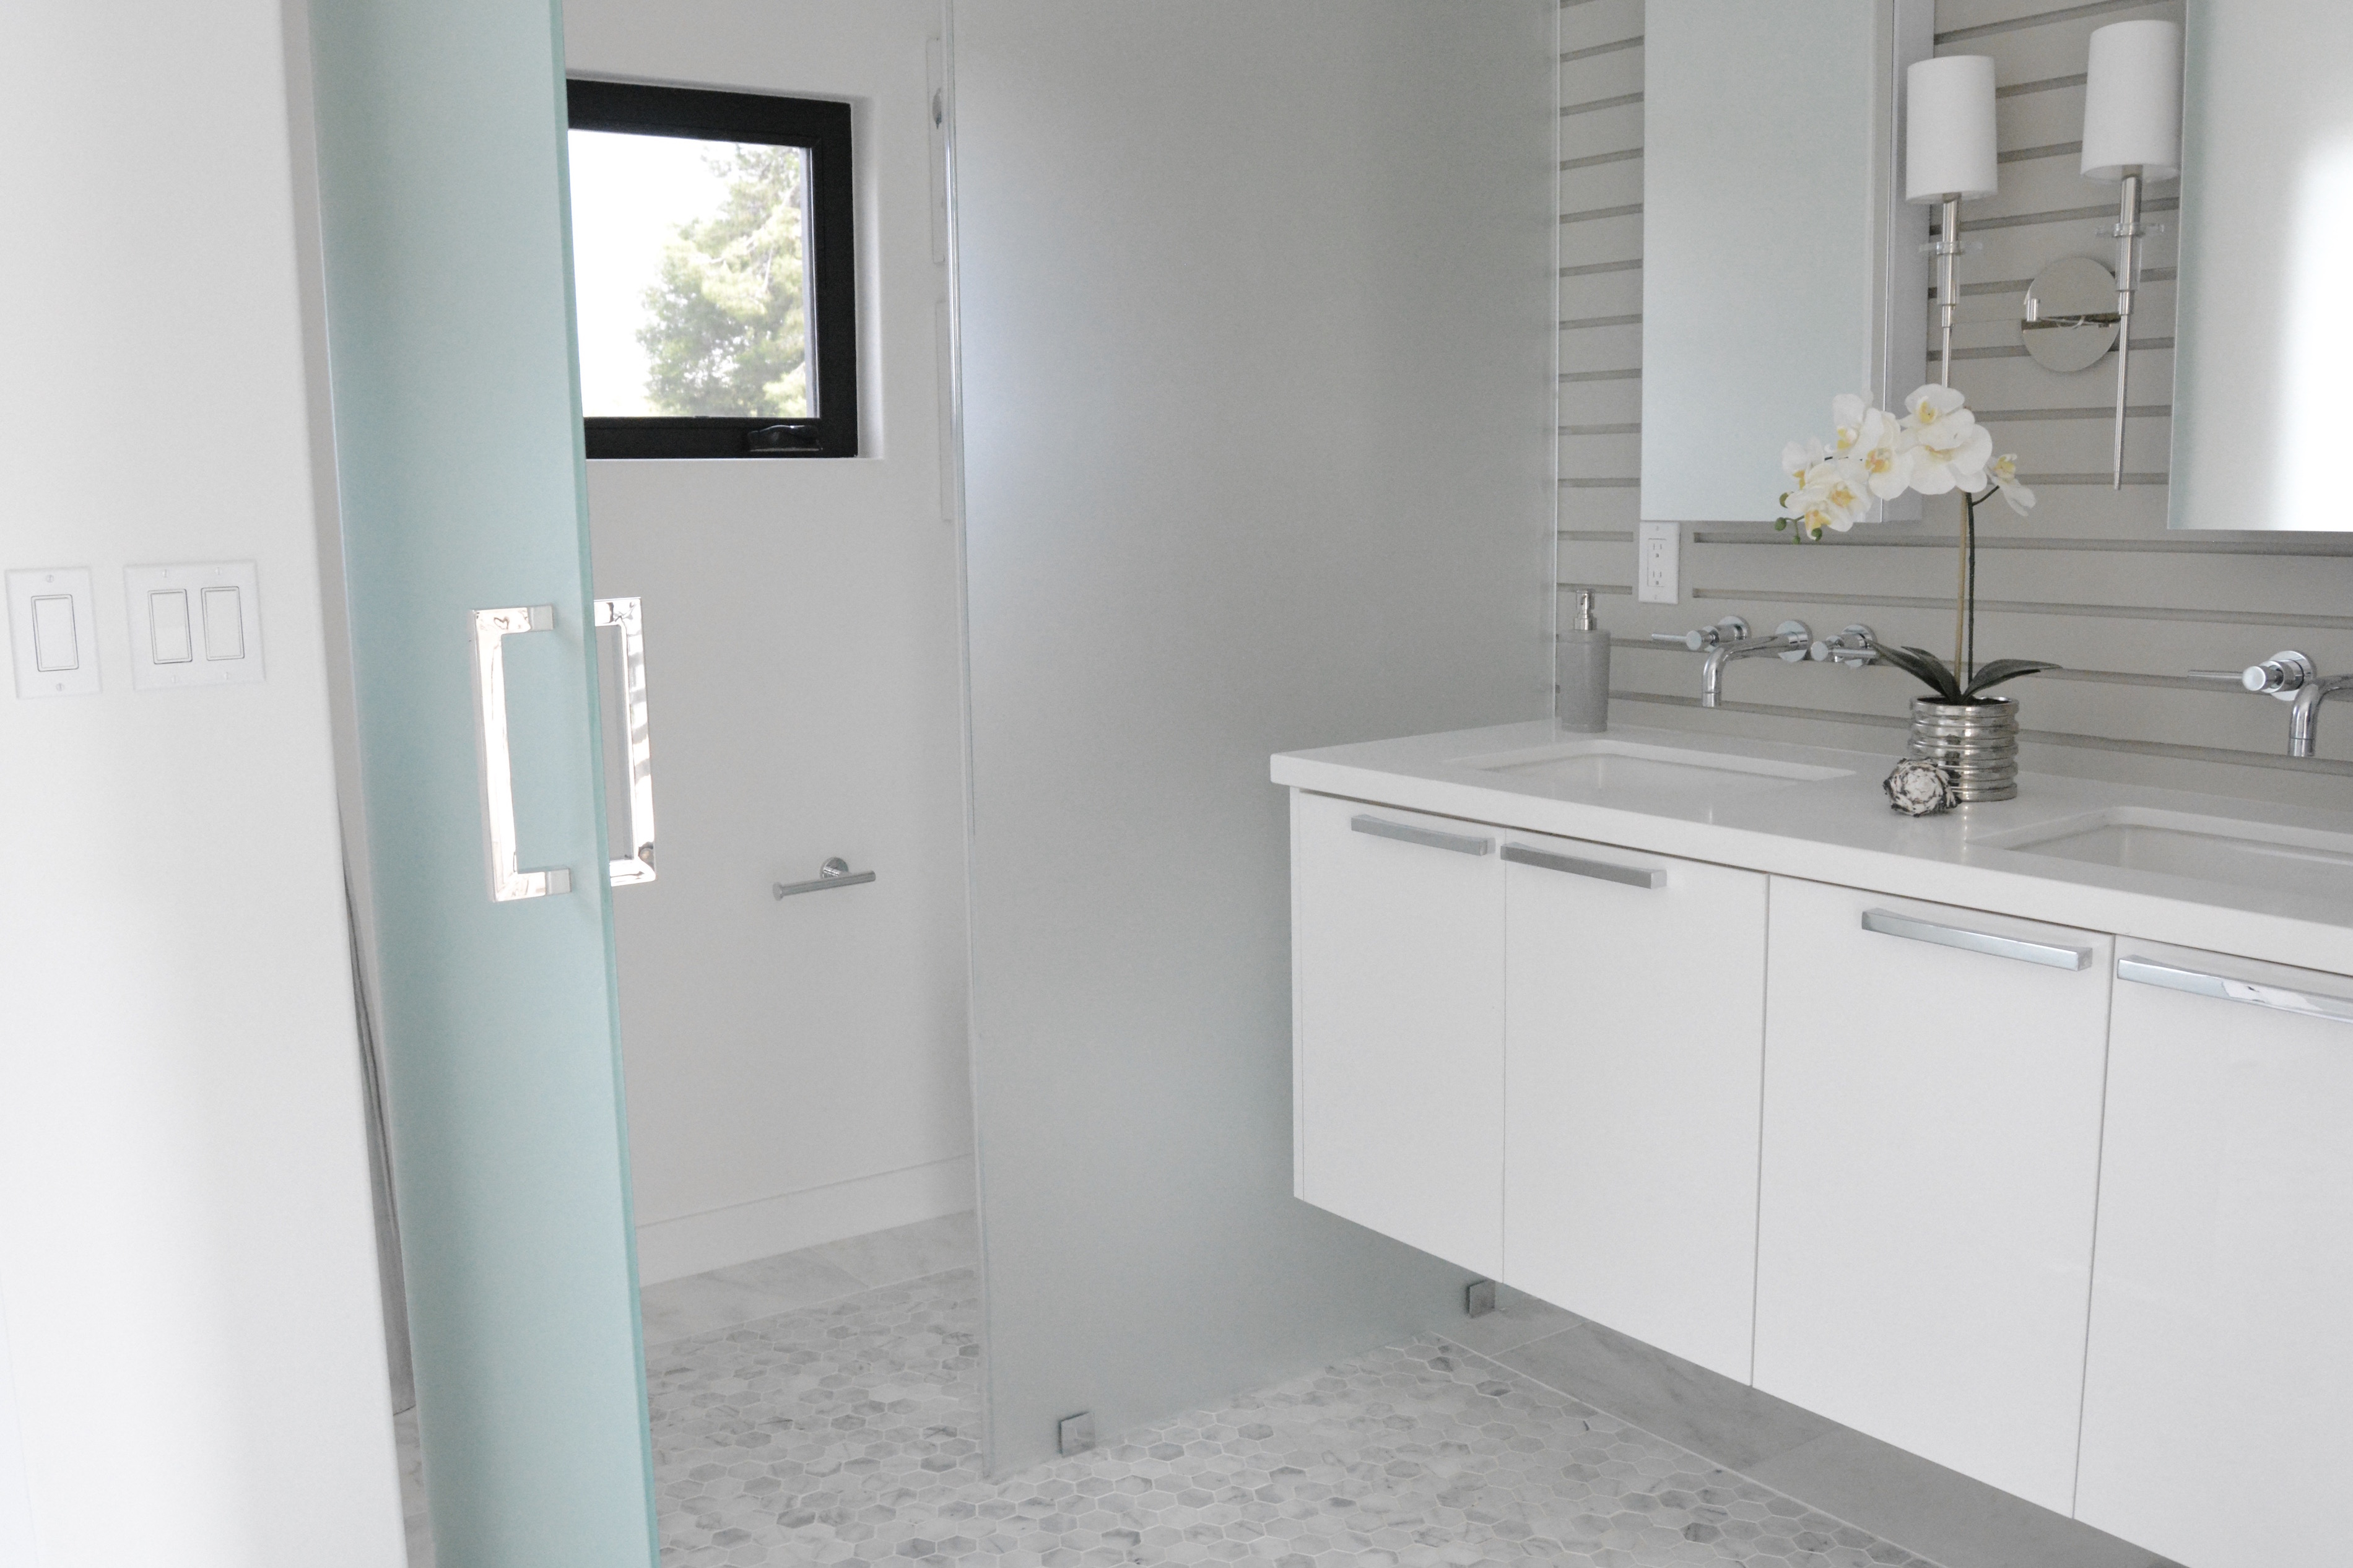 Modern white and gray bathroom floating vanity marble floors